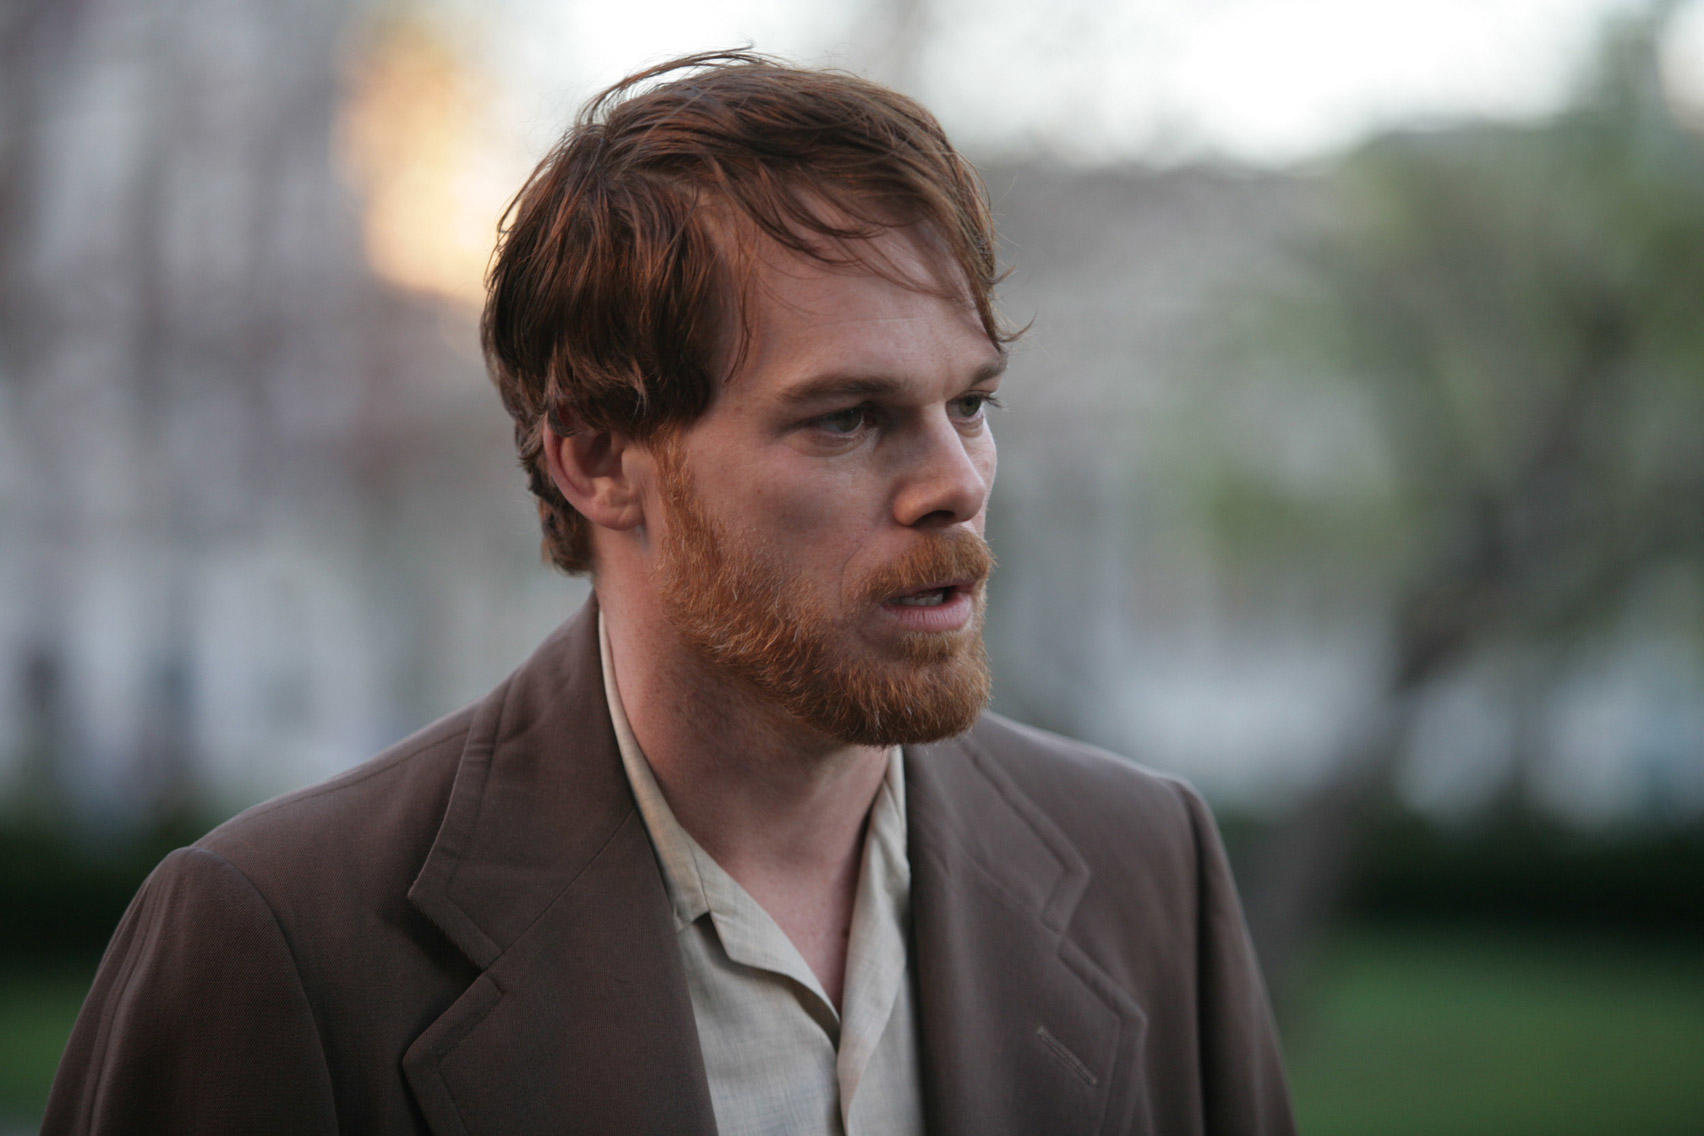 Michael C. Hall as David Kammerer in